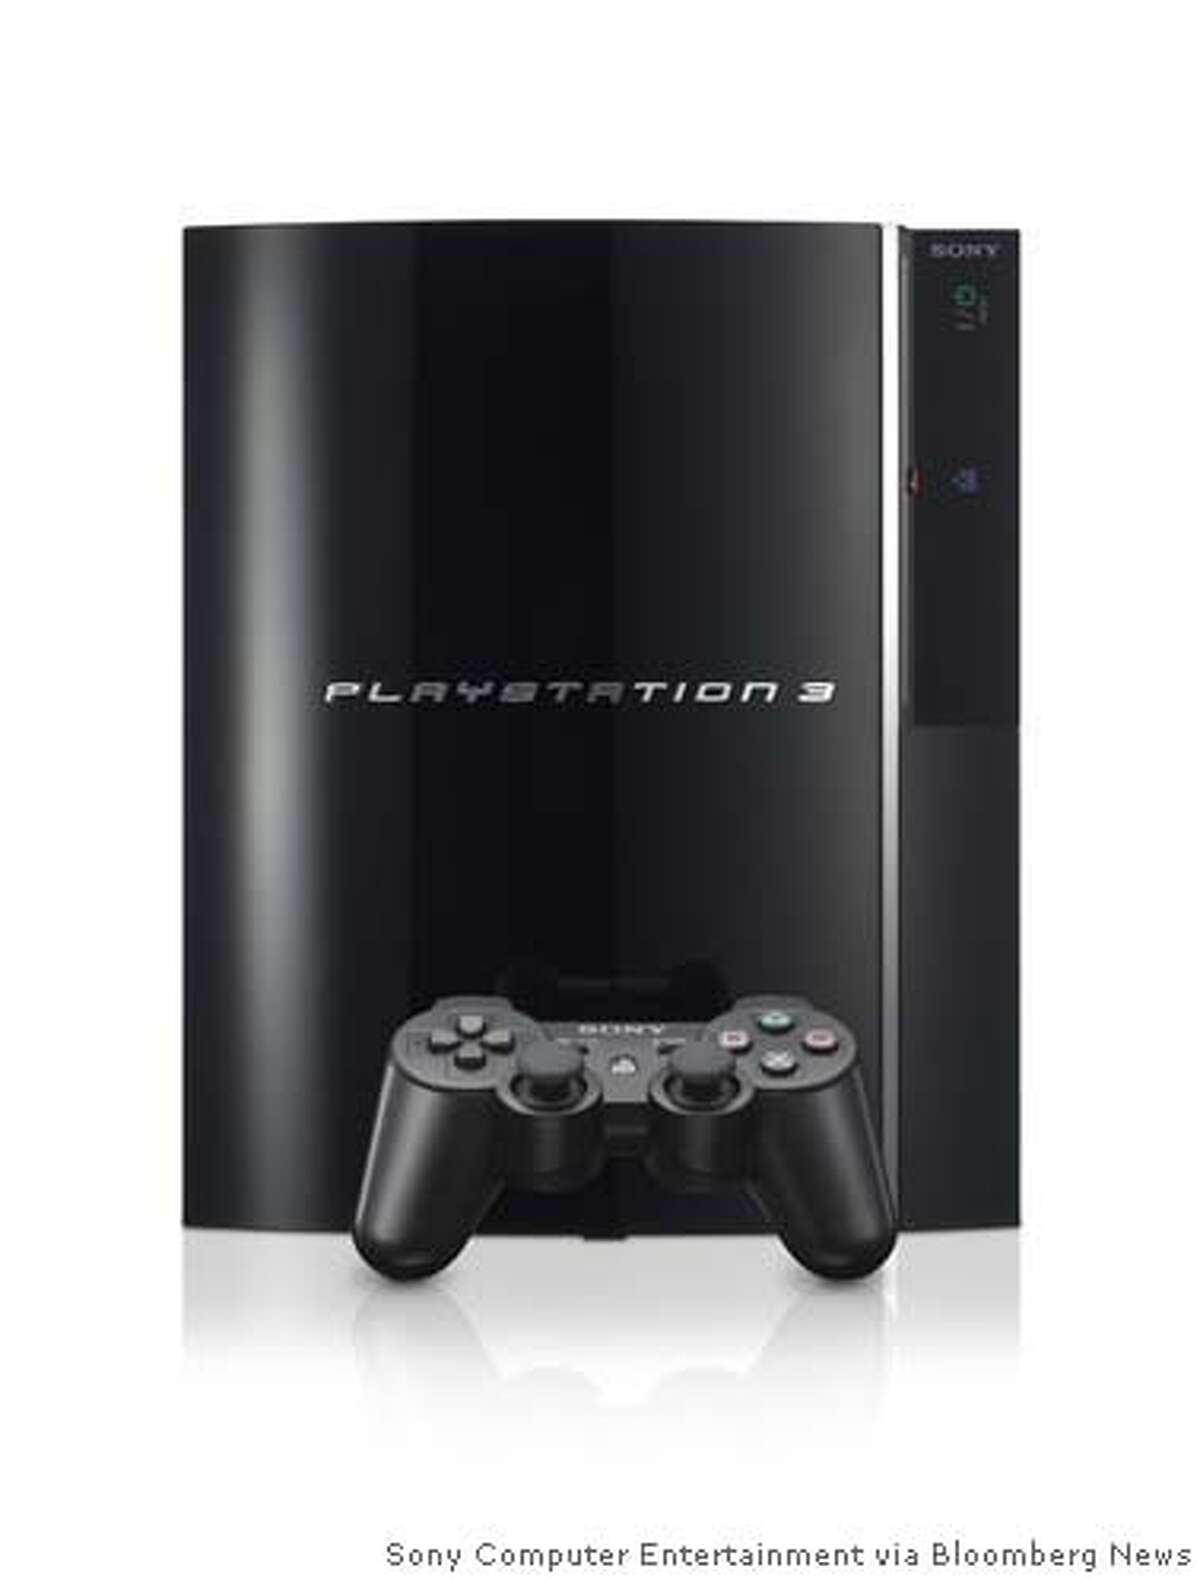 PlayStation 3, Sony's newest electronic game console, is pictured in this undated company handout photo. Sony Corp., the world's largest maker of video-game players, will begin selling the PlayStation 3 on November 17 in the U.S. and said it will cost at least $100 more than Microsoft Corp.'s Xbox 360. Source: Sony Computer Entertainment via Bloomberg News.